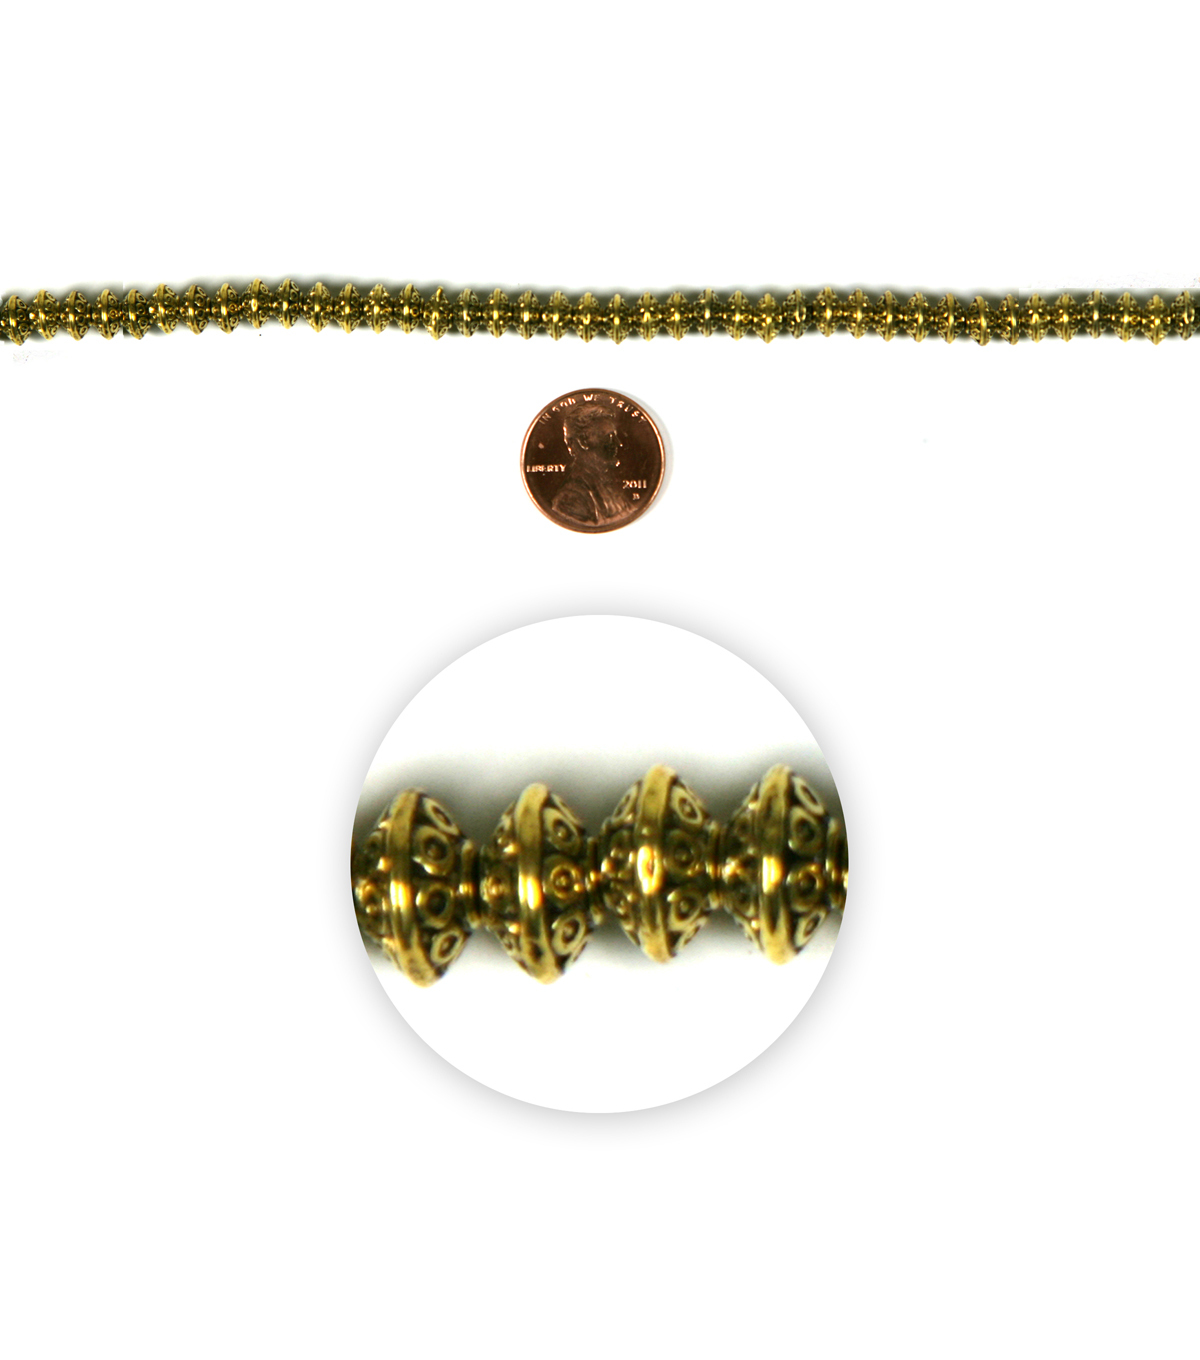 Blue Moon Strung Metal Spacers Beads,Rondelle,Antique Gold,Dots